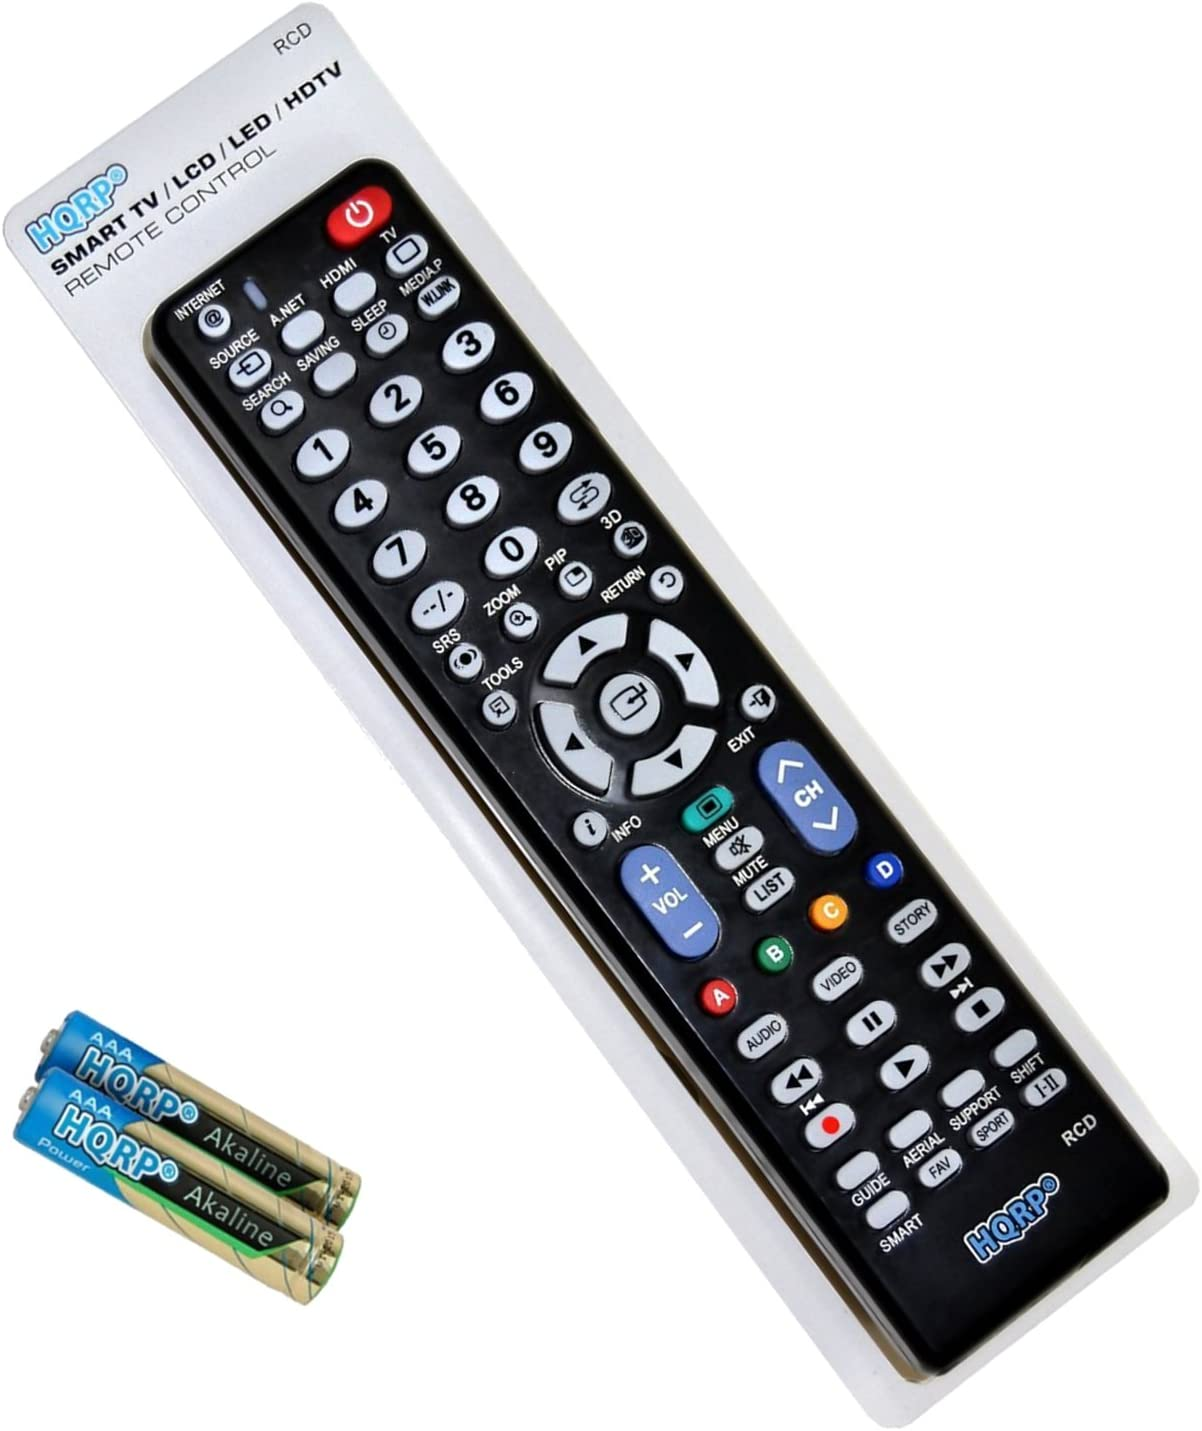 HQRP Remote Control Works with Samsung HP-S5033 HP-S5053 HP-S5073 HP-S6373 HP-T4234 HP-T4254 UN75F6400AFXZA UN65F6400AFXZA UN60F6400AFXZA UN55F6400AFXZA UN50F6400AFXZA LCD LED HD Smart TV